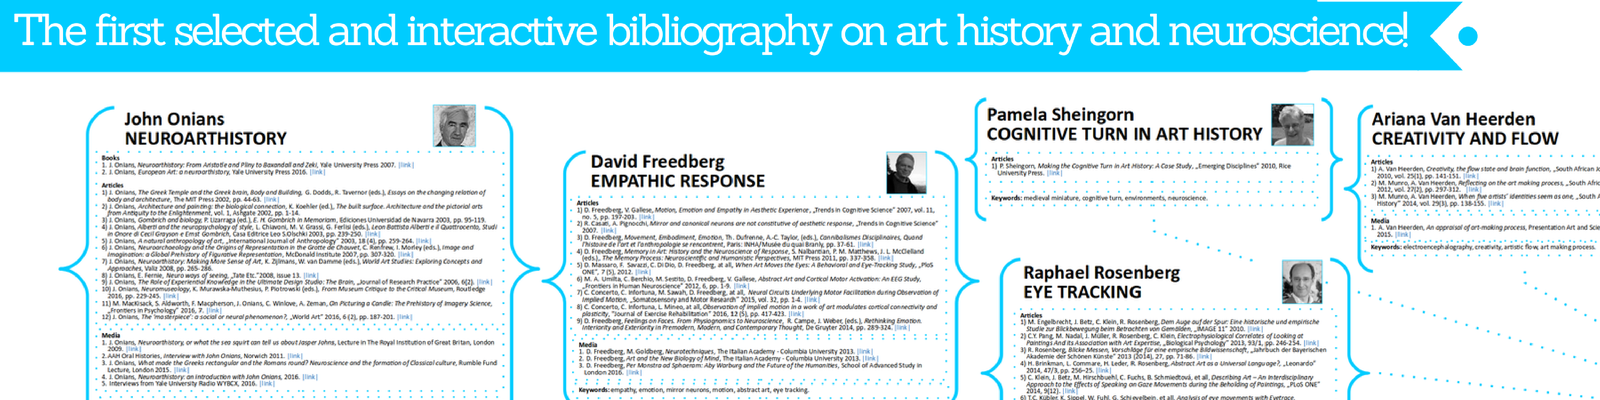 The first selected and interactive bibliography on art history and neuroscience!